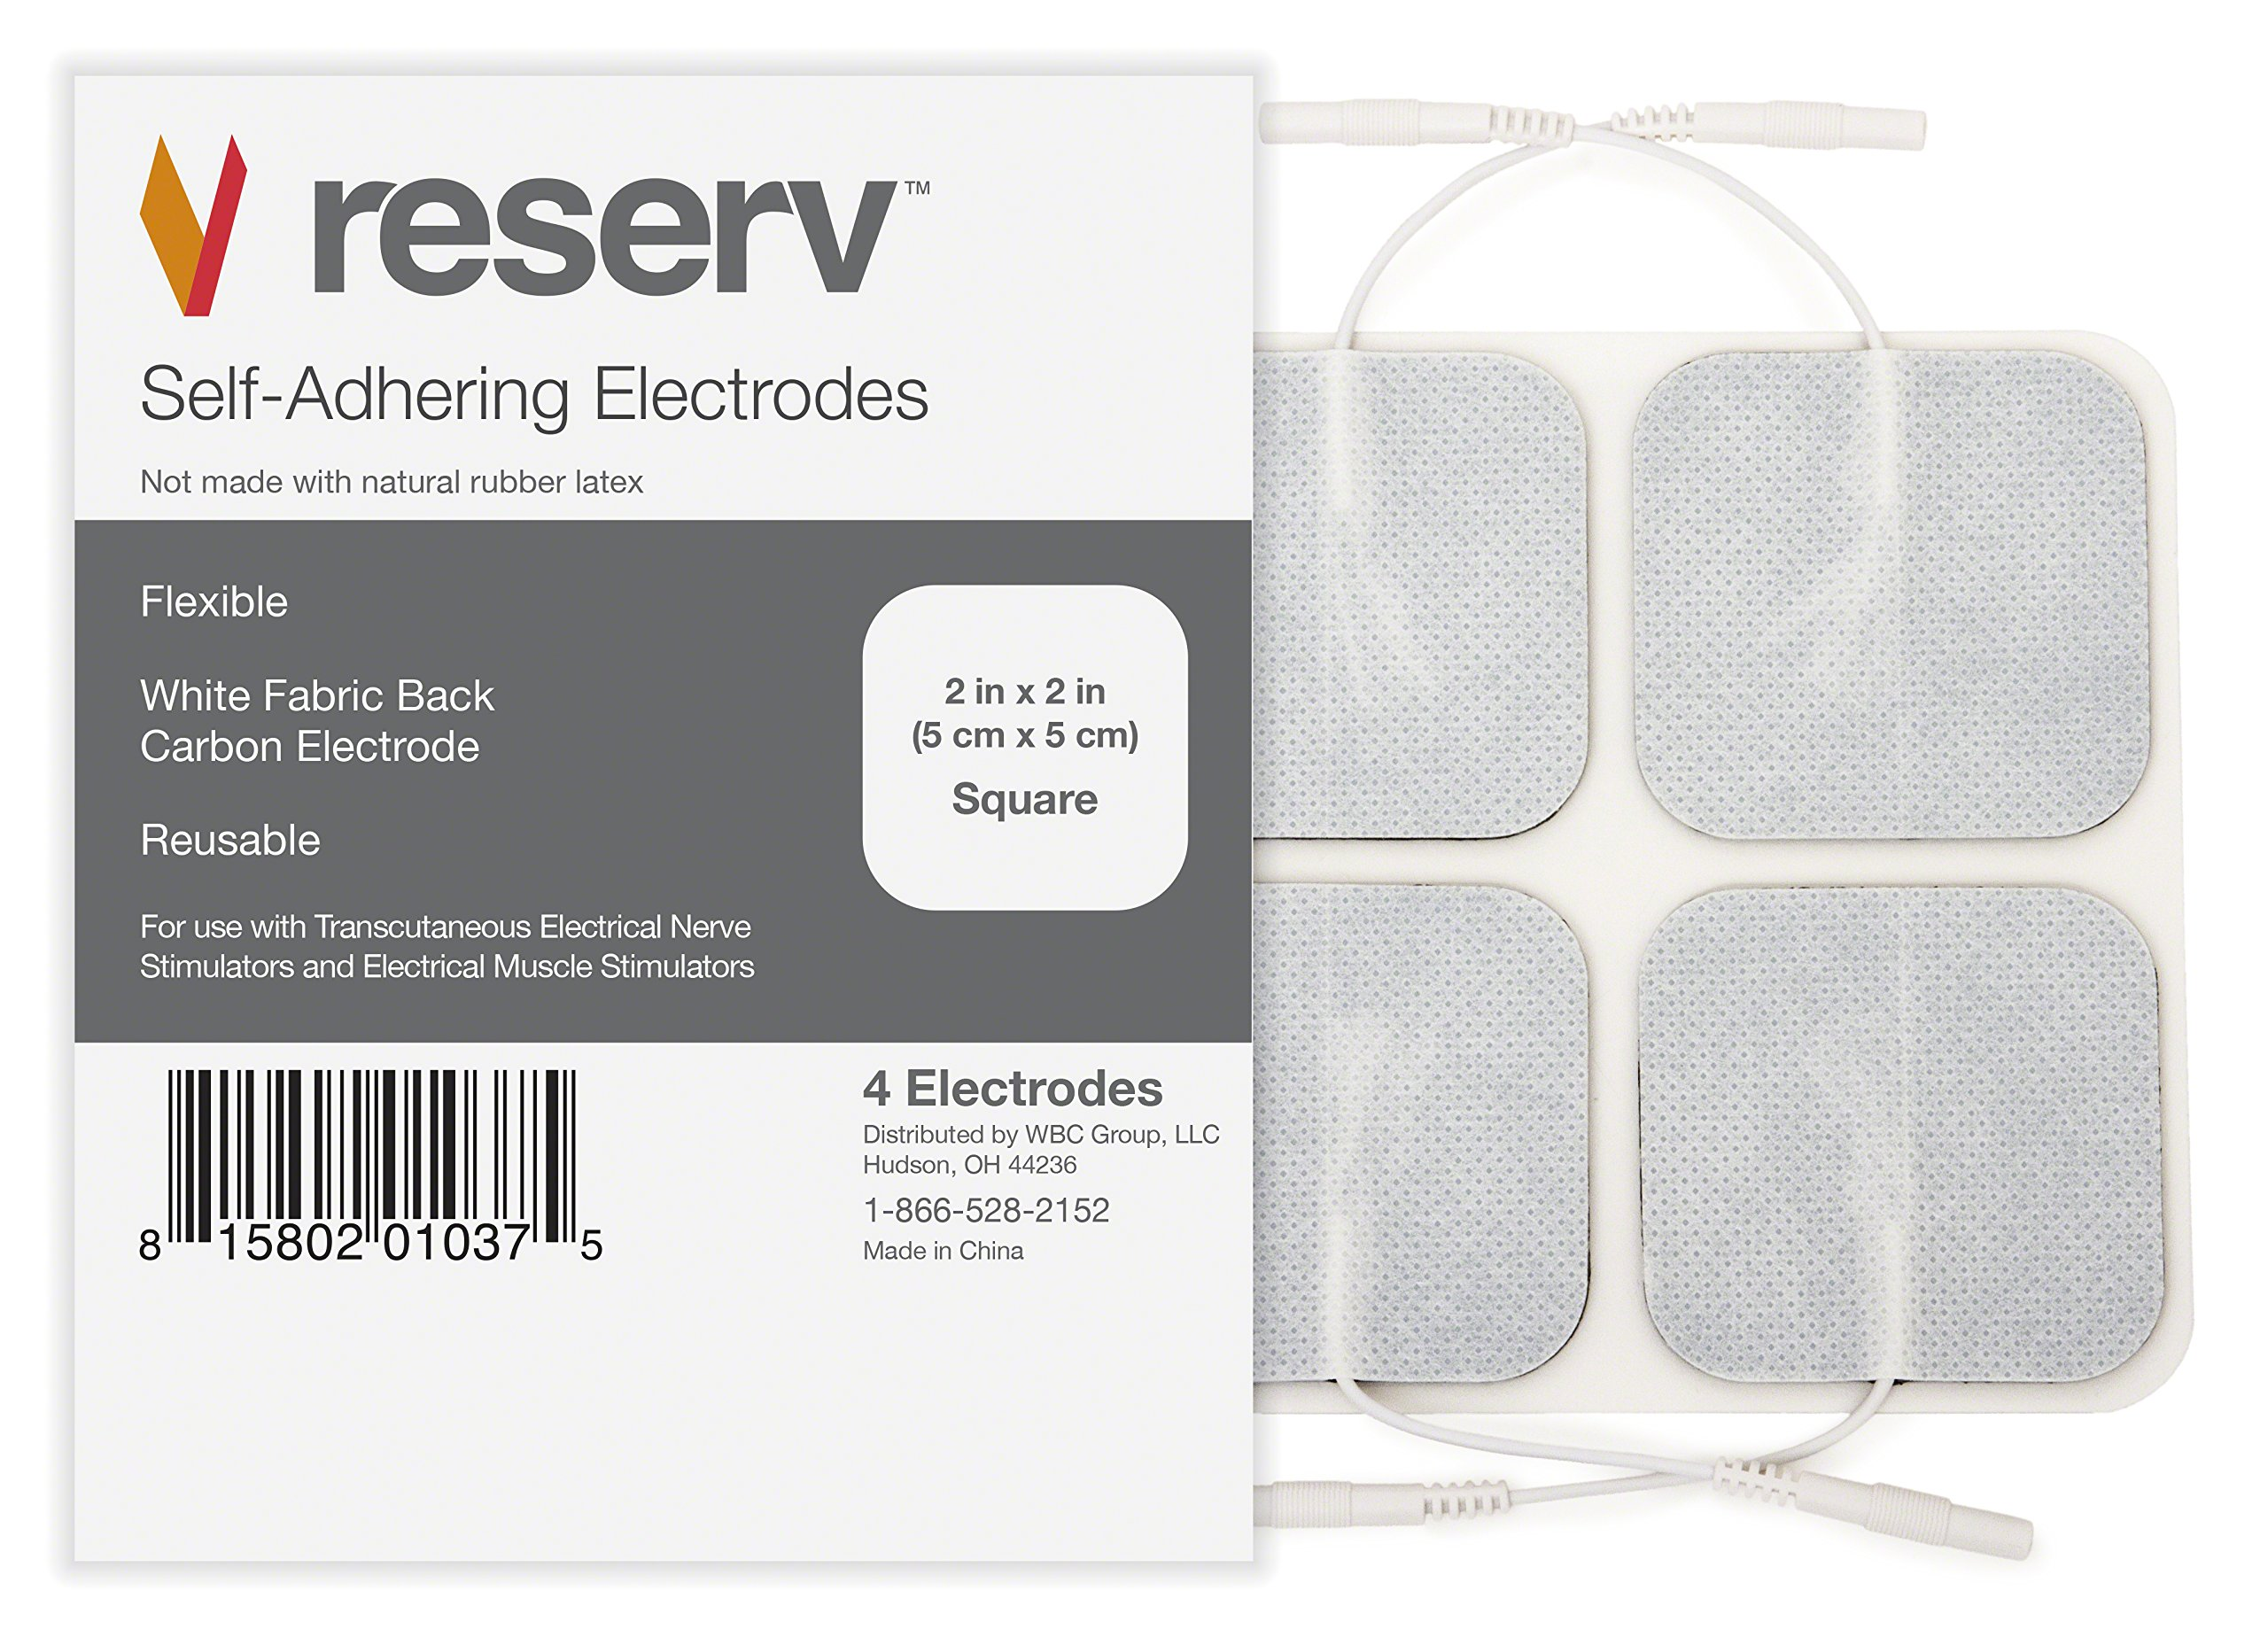 reserv 20 Pack of 2'' x 2'' Premium Re-Usable Self Adhesive Electrode Pads for TENS/EMS Unit, Fabric Backed Pads with Premium Gel (White Cloth and Latex Free) (1/2 Pack (20 electrodes))